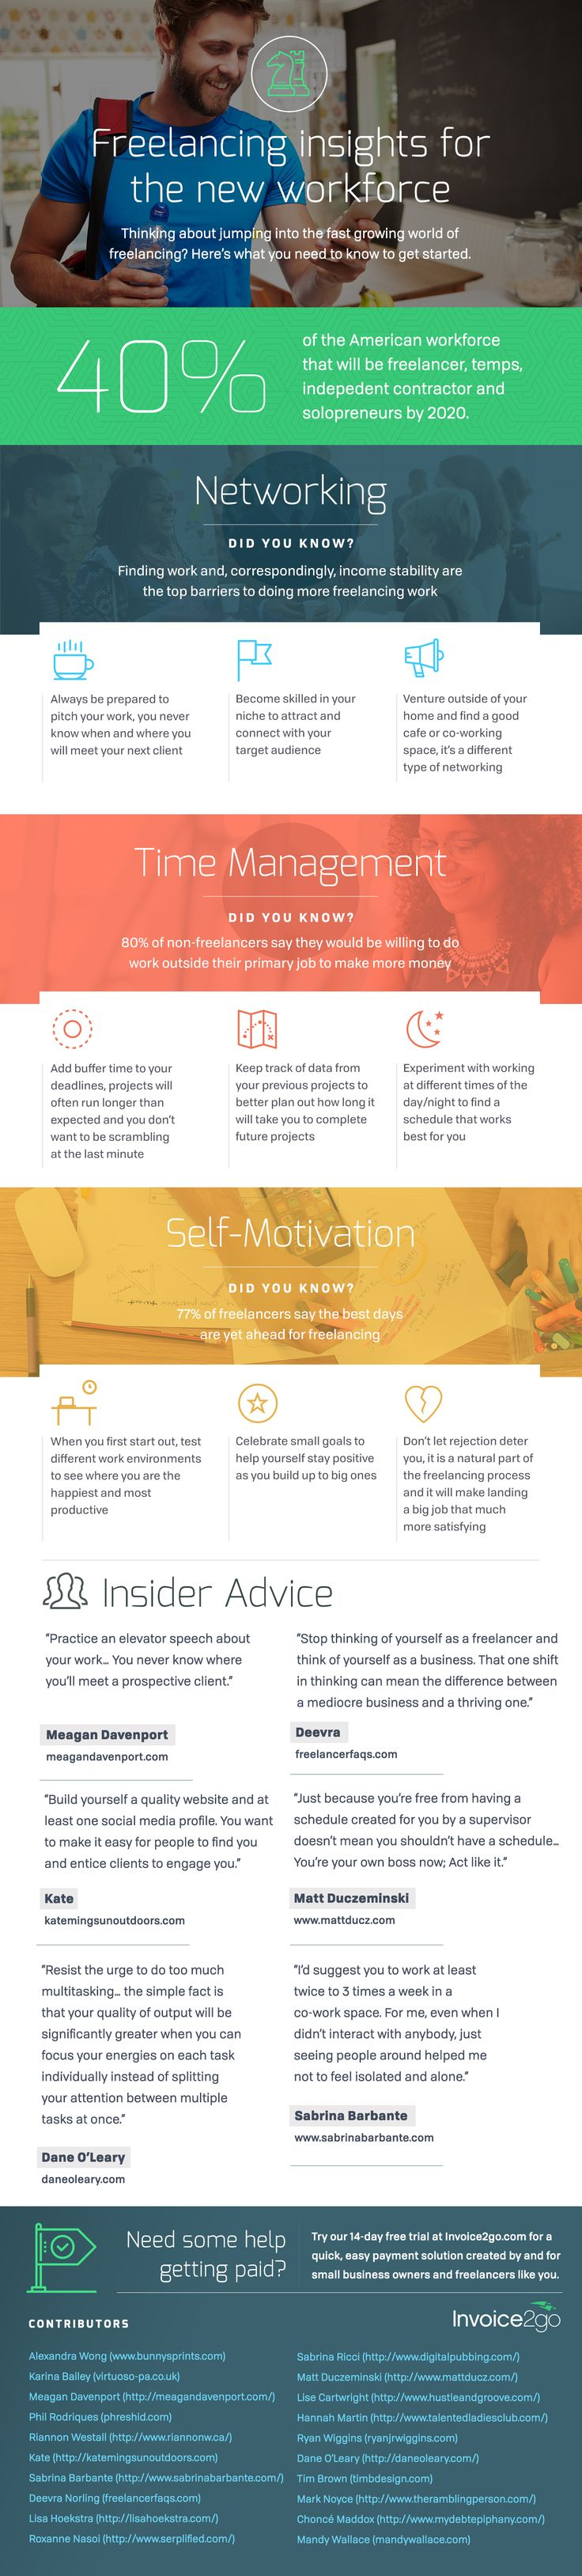 freelancing insights what should new freelancers bear in mind insightwork life balancethe - Work Life Balance Tips Creating A Quality Work Life Balance